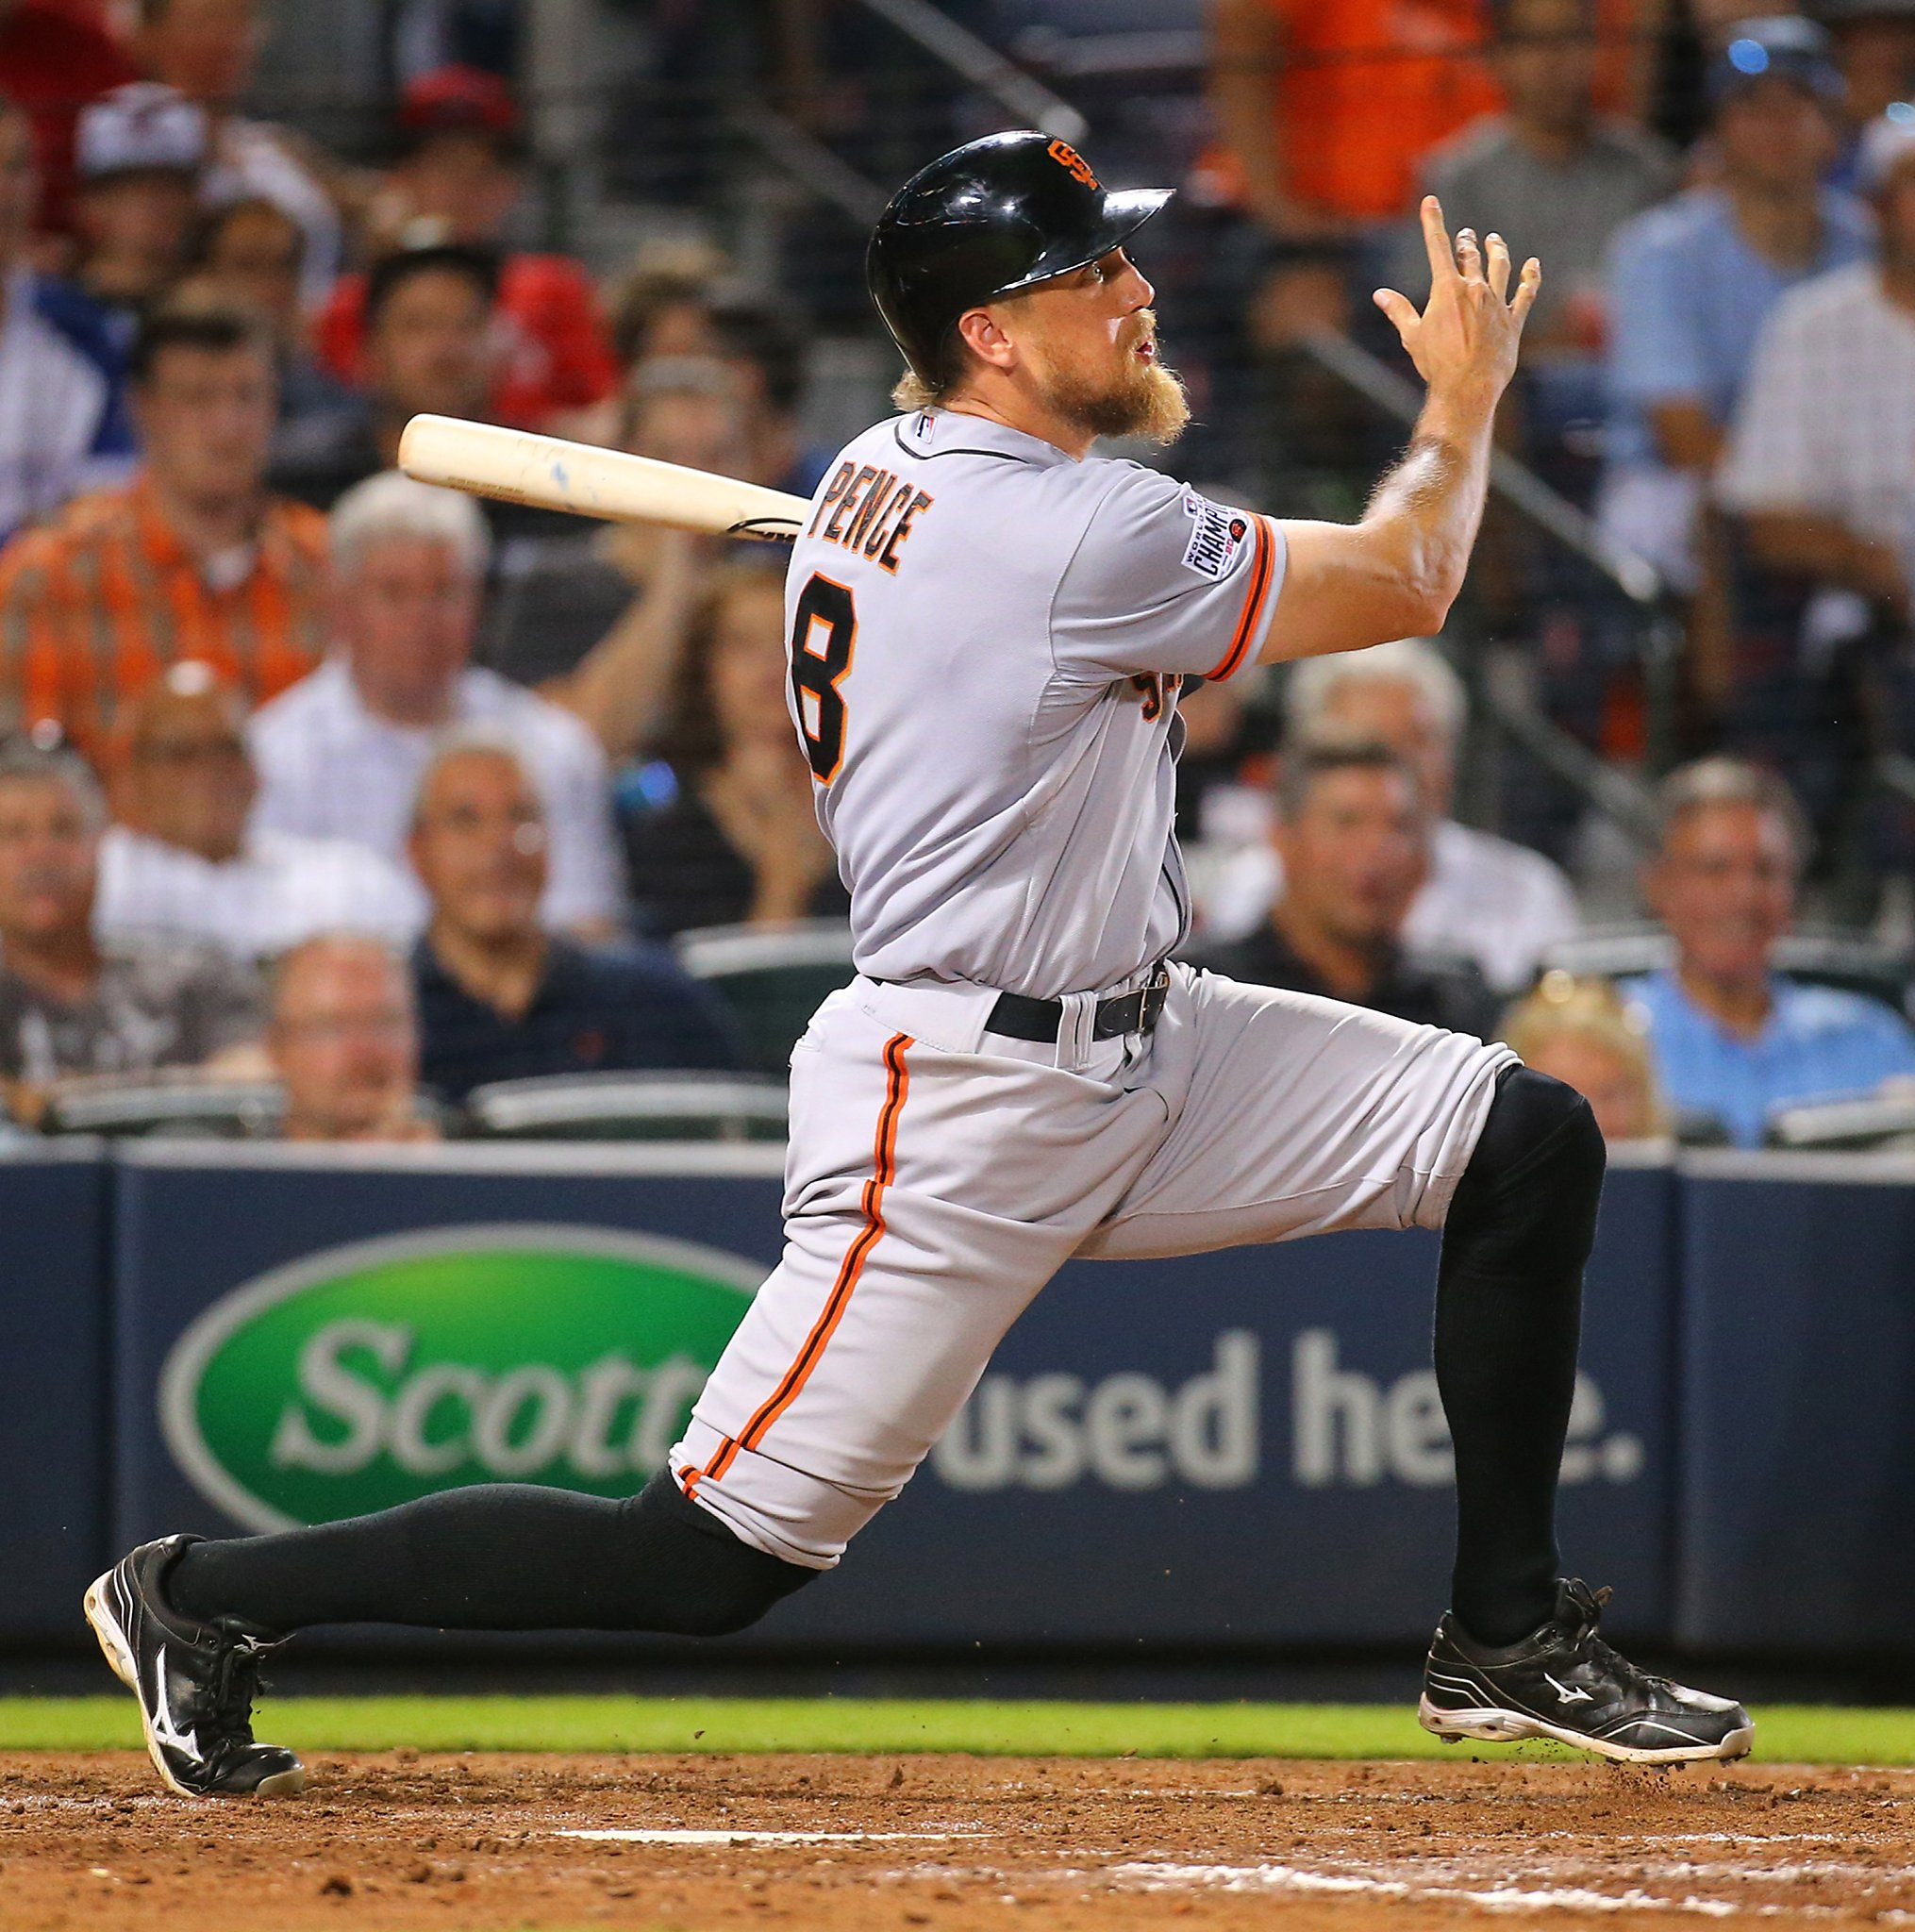 Sf Chronicle Classifieds: Hunter Pence's 3-run HR Leads Giants Past Braves